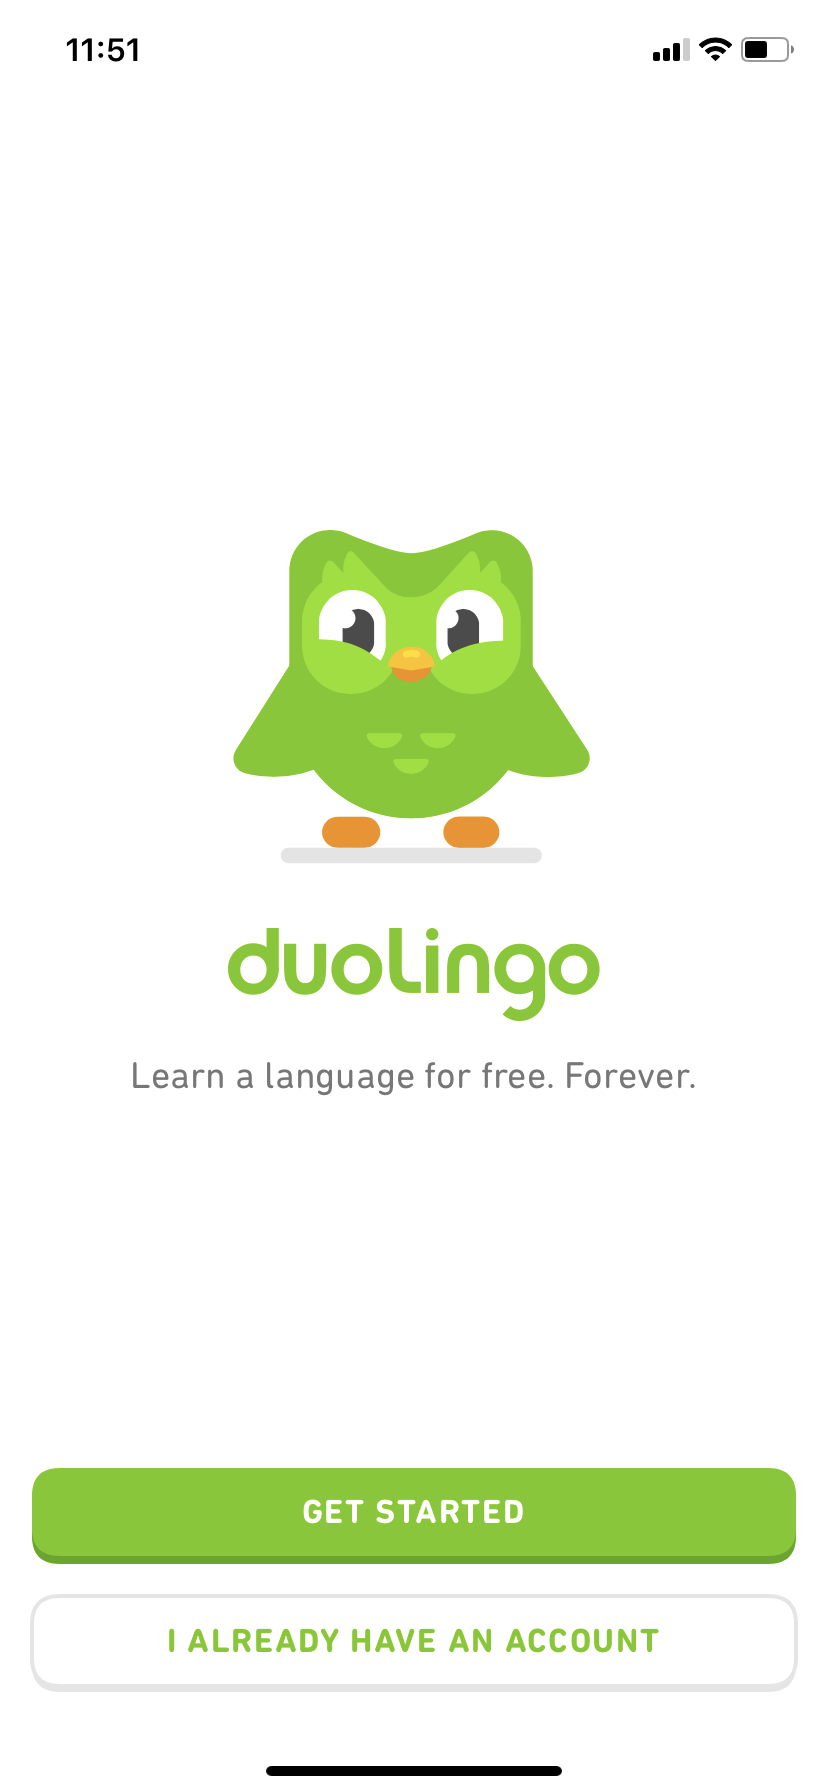 screenshot image of duolingo mobile app's user onboarding experience featuring the duolingo mascot. this is a great example of user onboarding for mobile. this is the duolingo signup screen